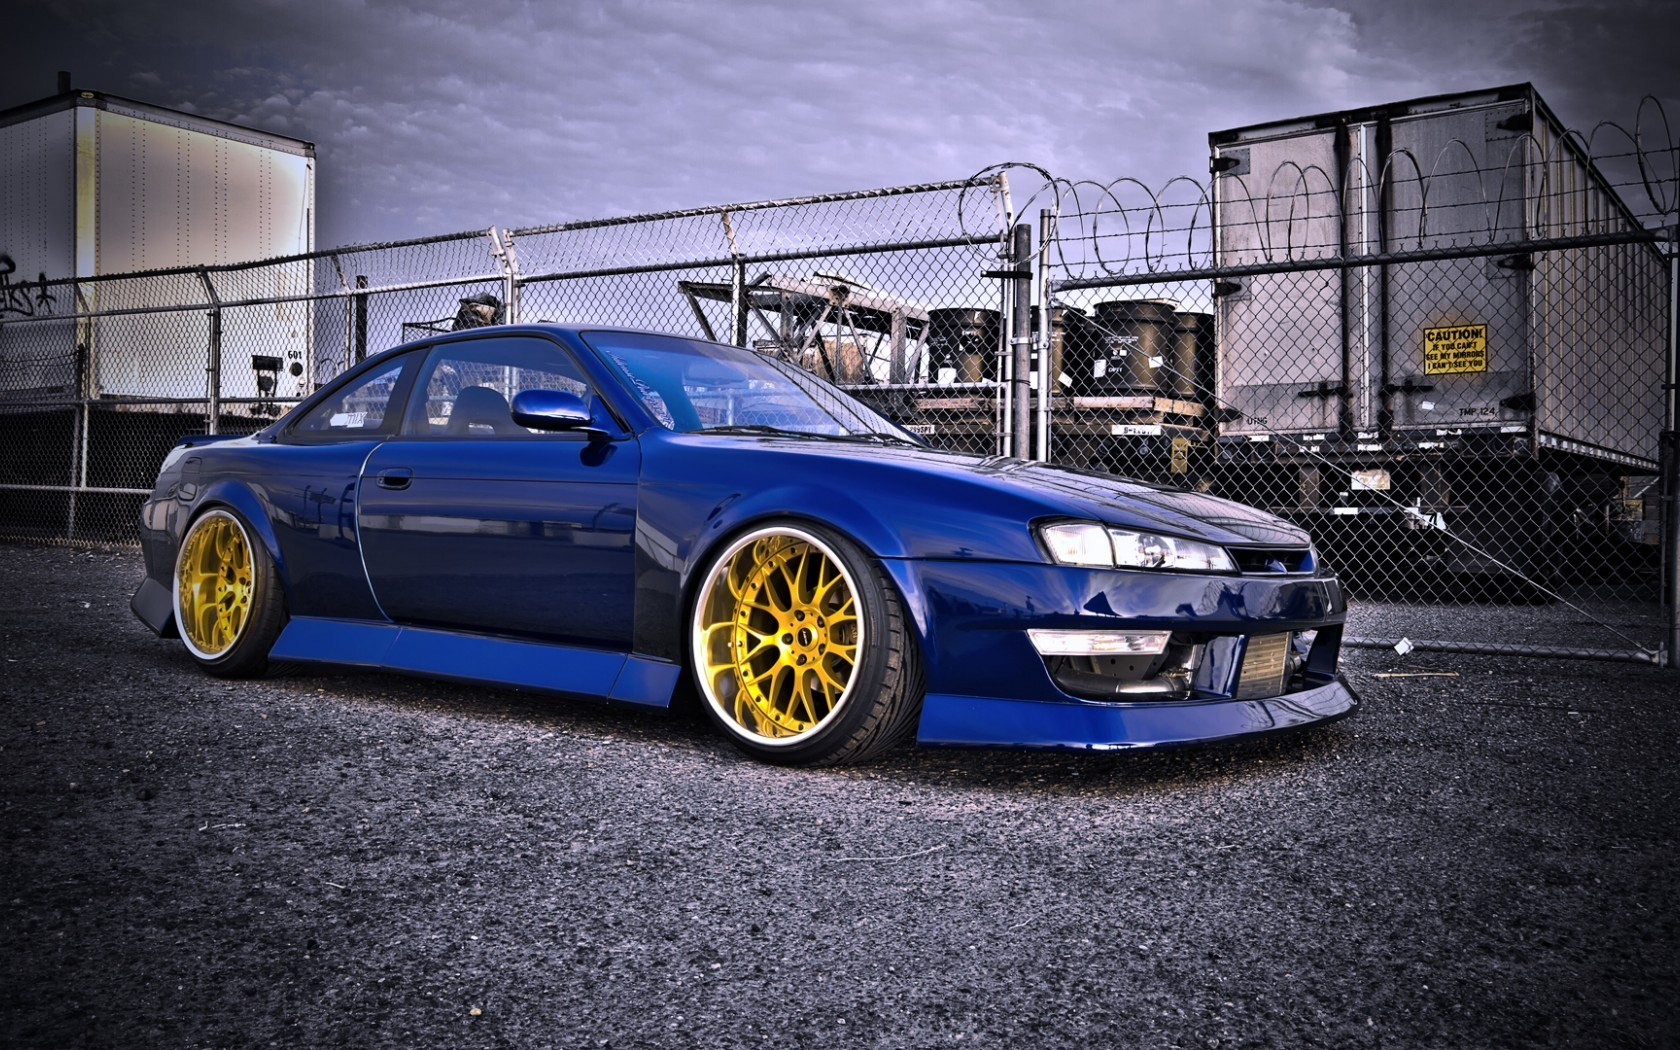 Nissan Silvia S14 Parking